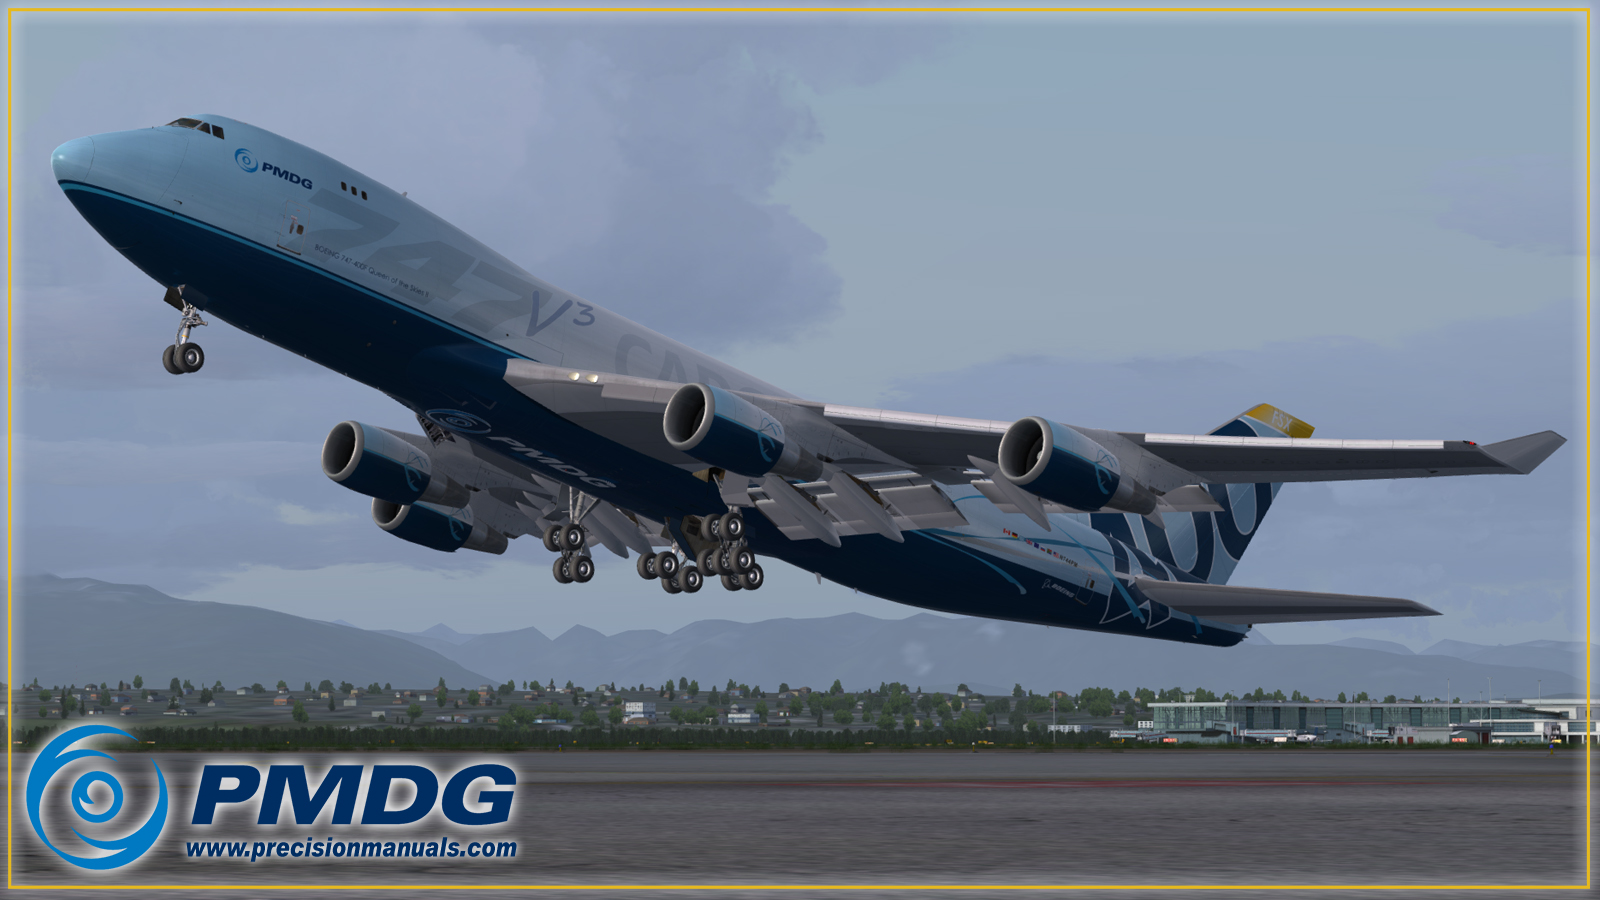 PMDG 747-400 Queen of the Skies II: 747-400F preview